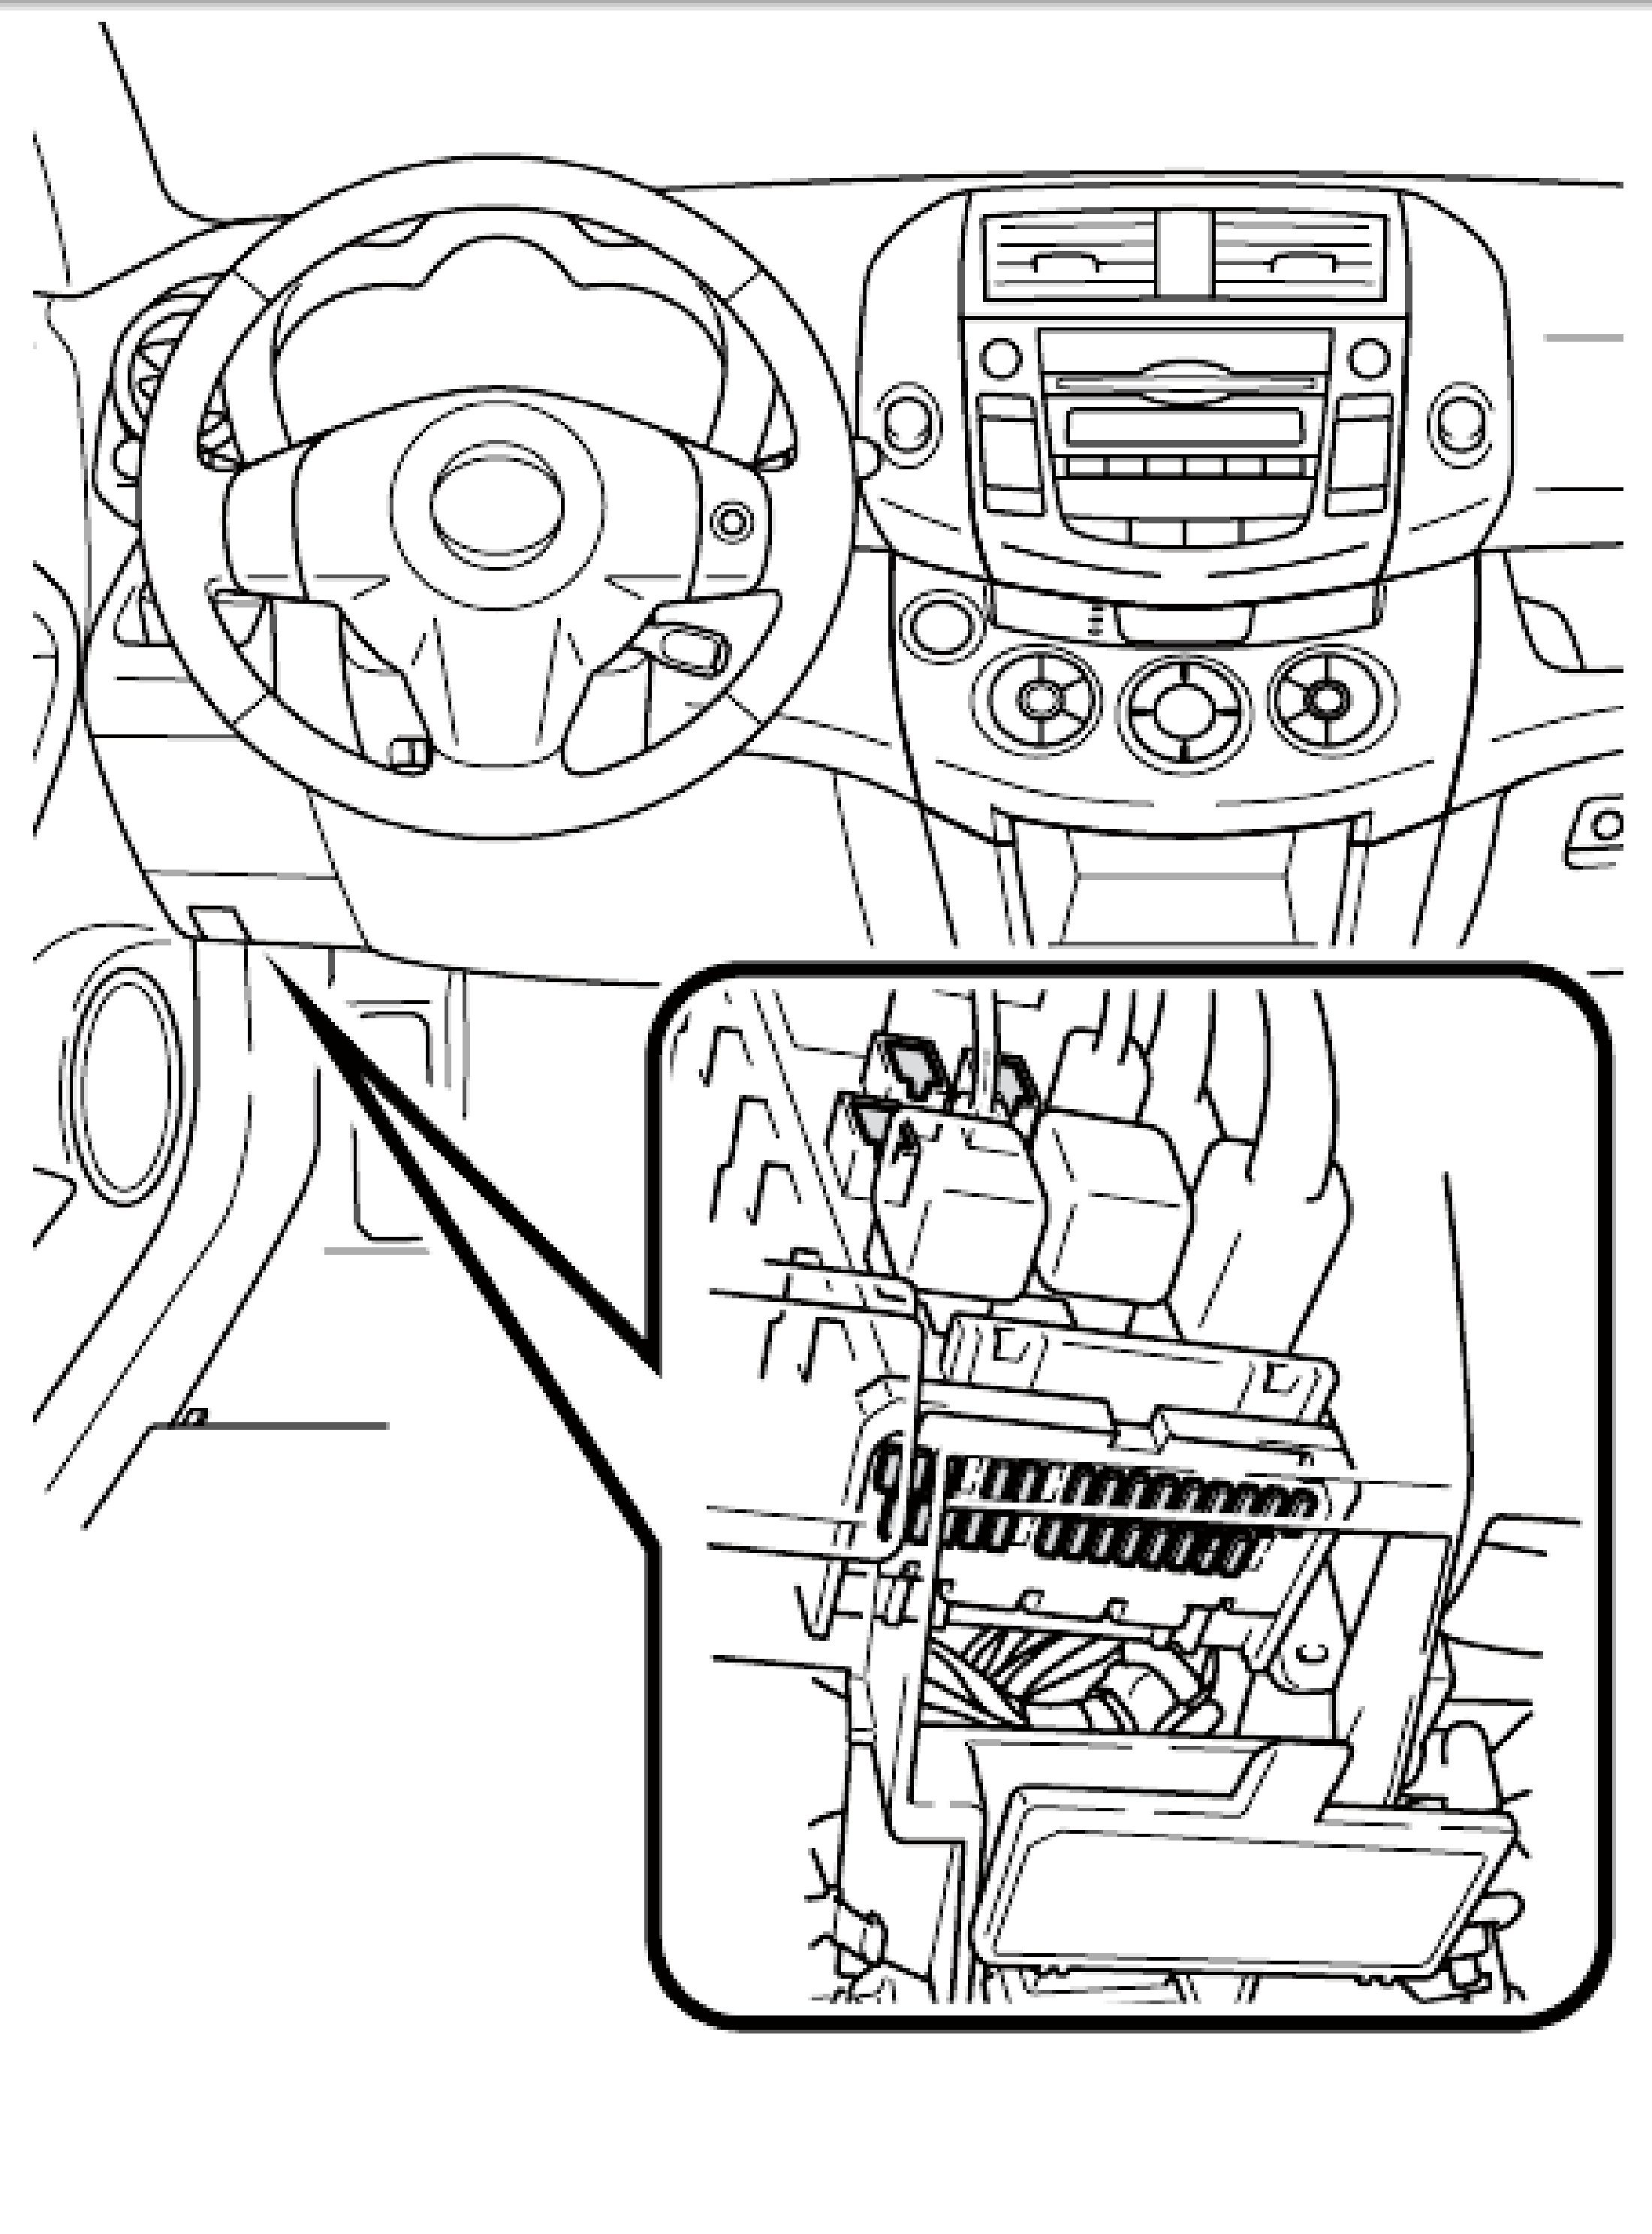 2006 Toyota Corolla Interior Fuse Box Diagram 45 Wiring 1996